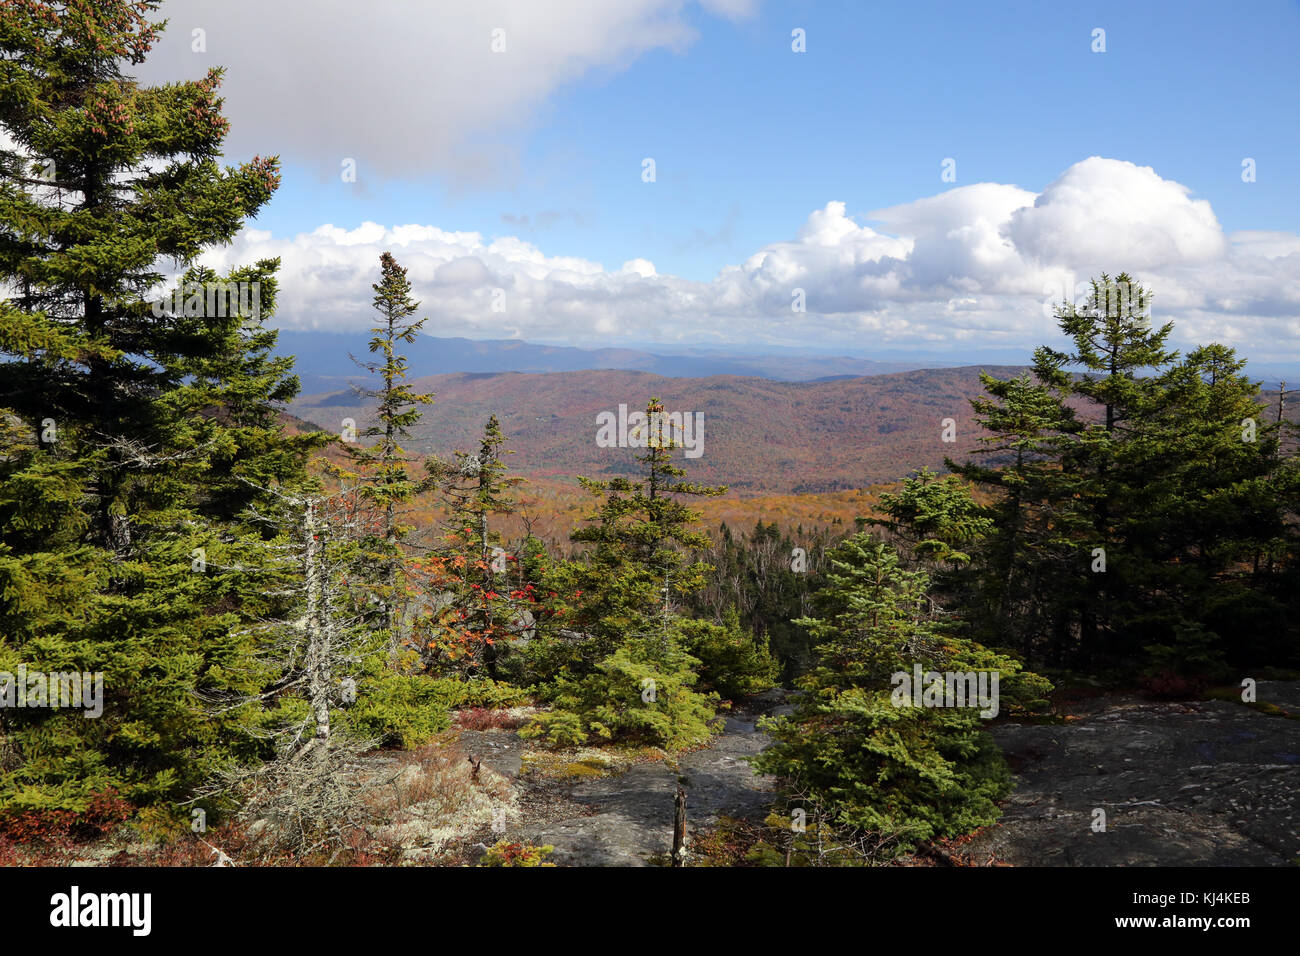 Scenic overlook, Camel's Hump, VT, USA - Stock Image